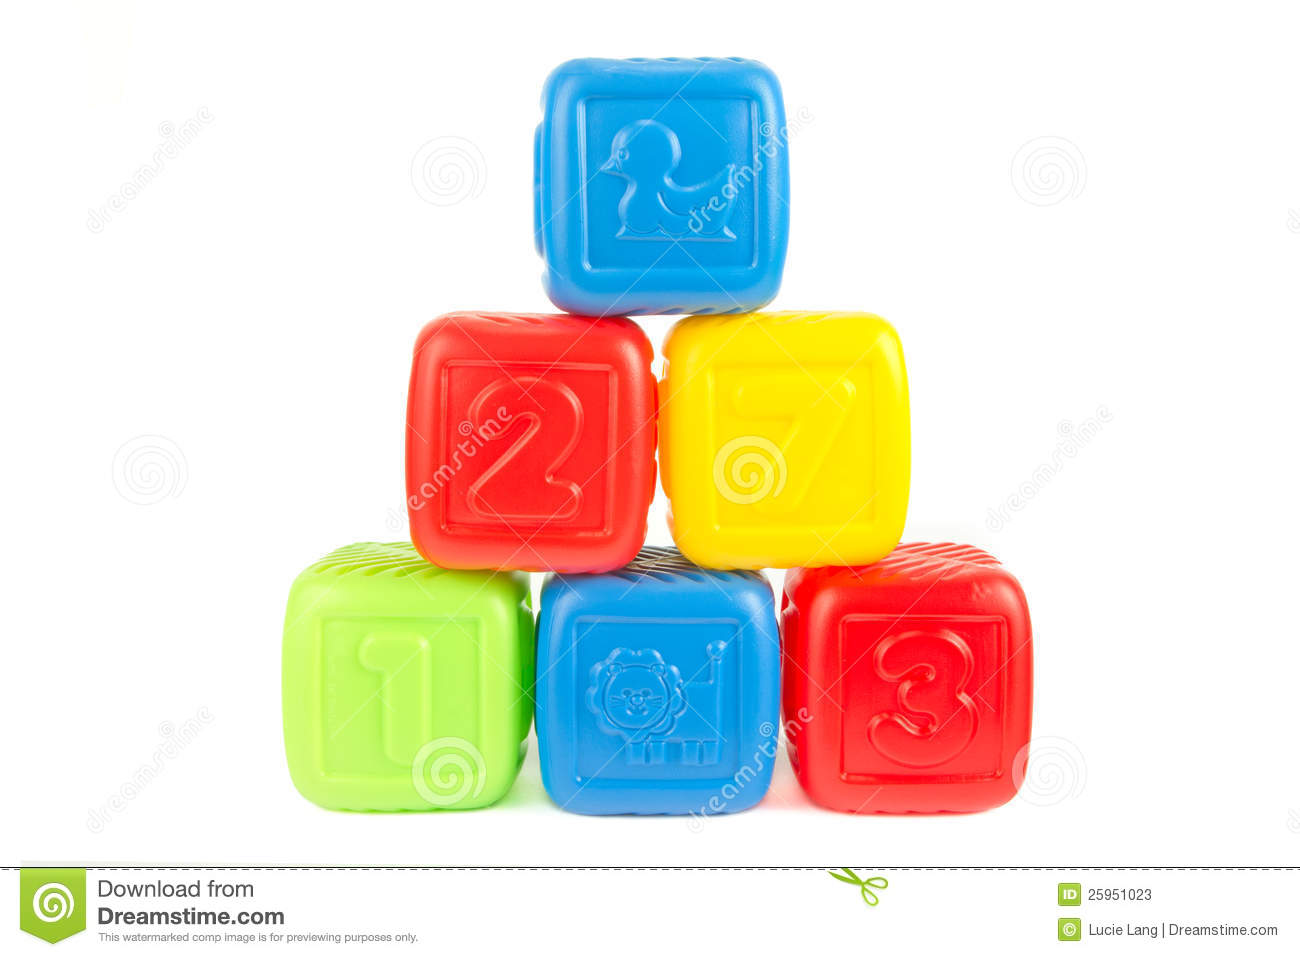 Tower of colourful plastic building blocks stock photos for Plastic building blocks home construction